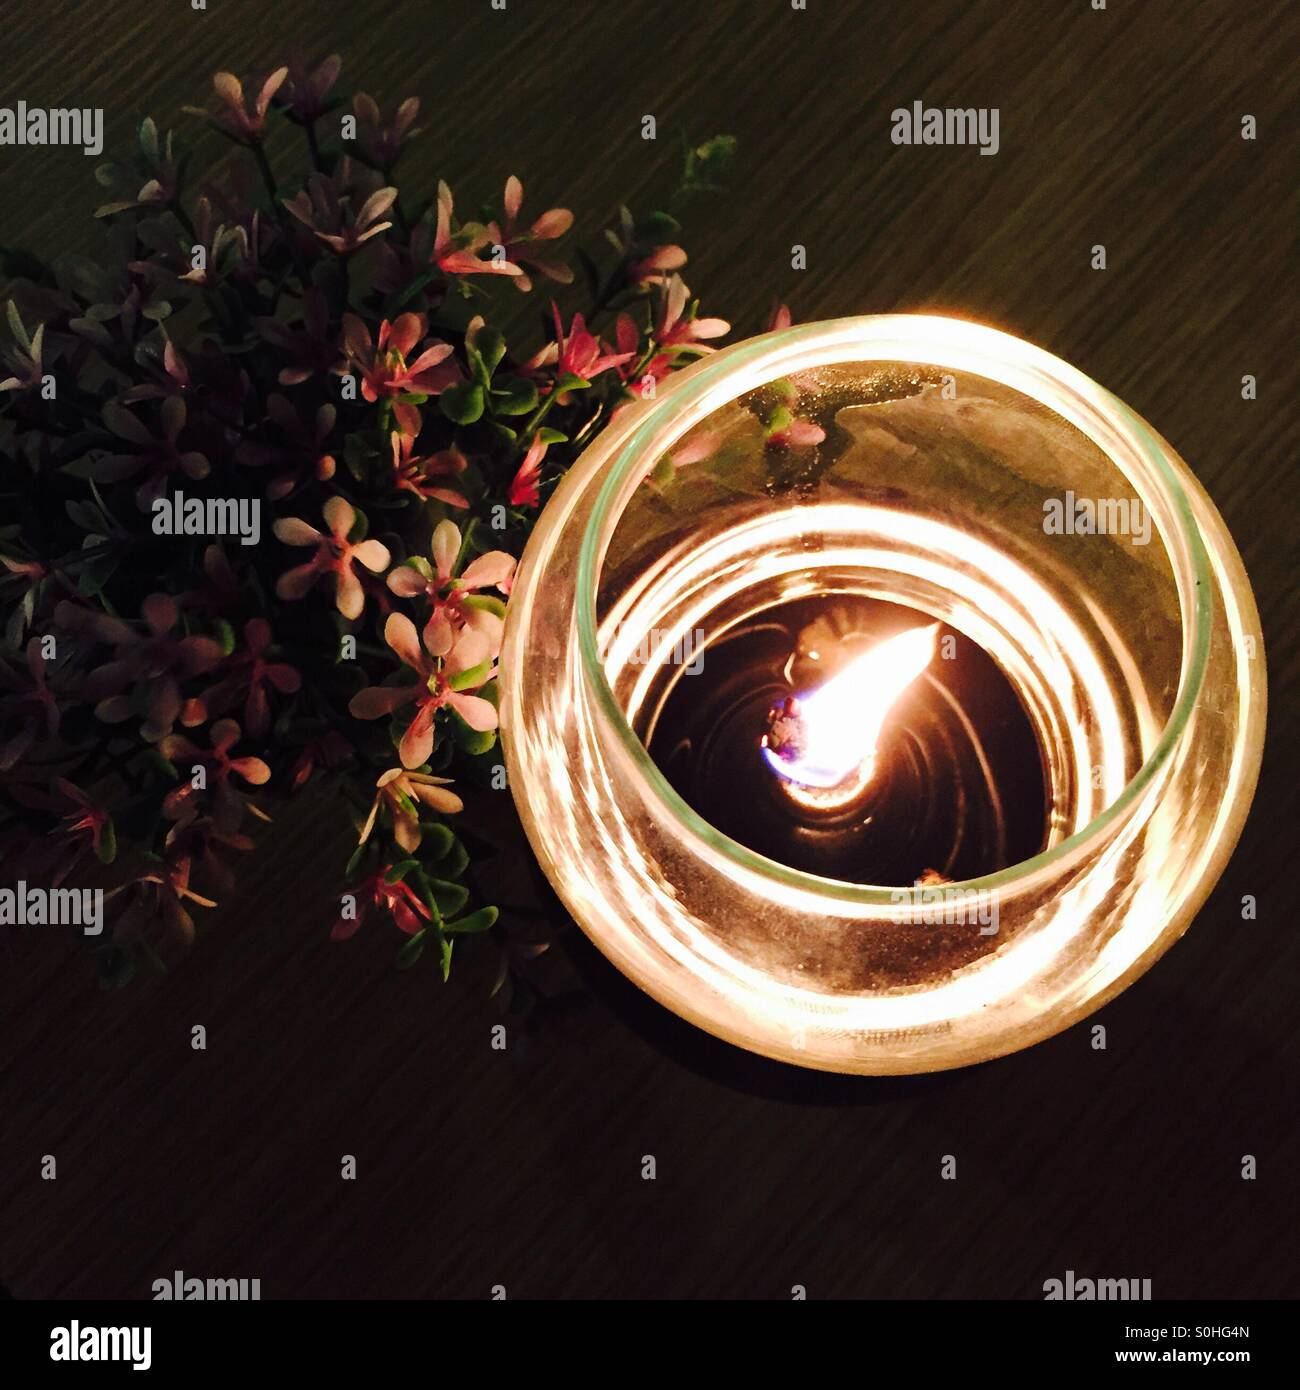 Light on a dinning table - Stock Image